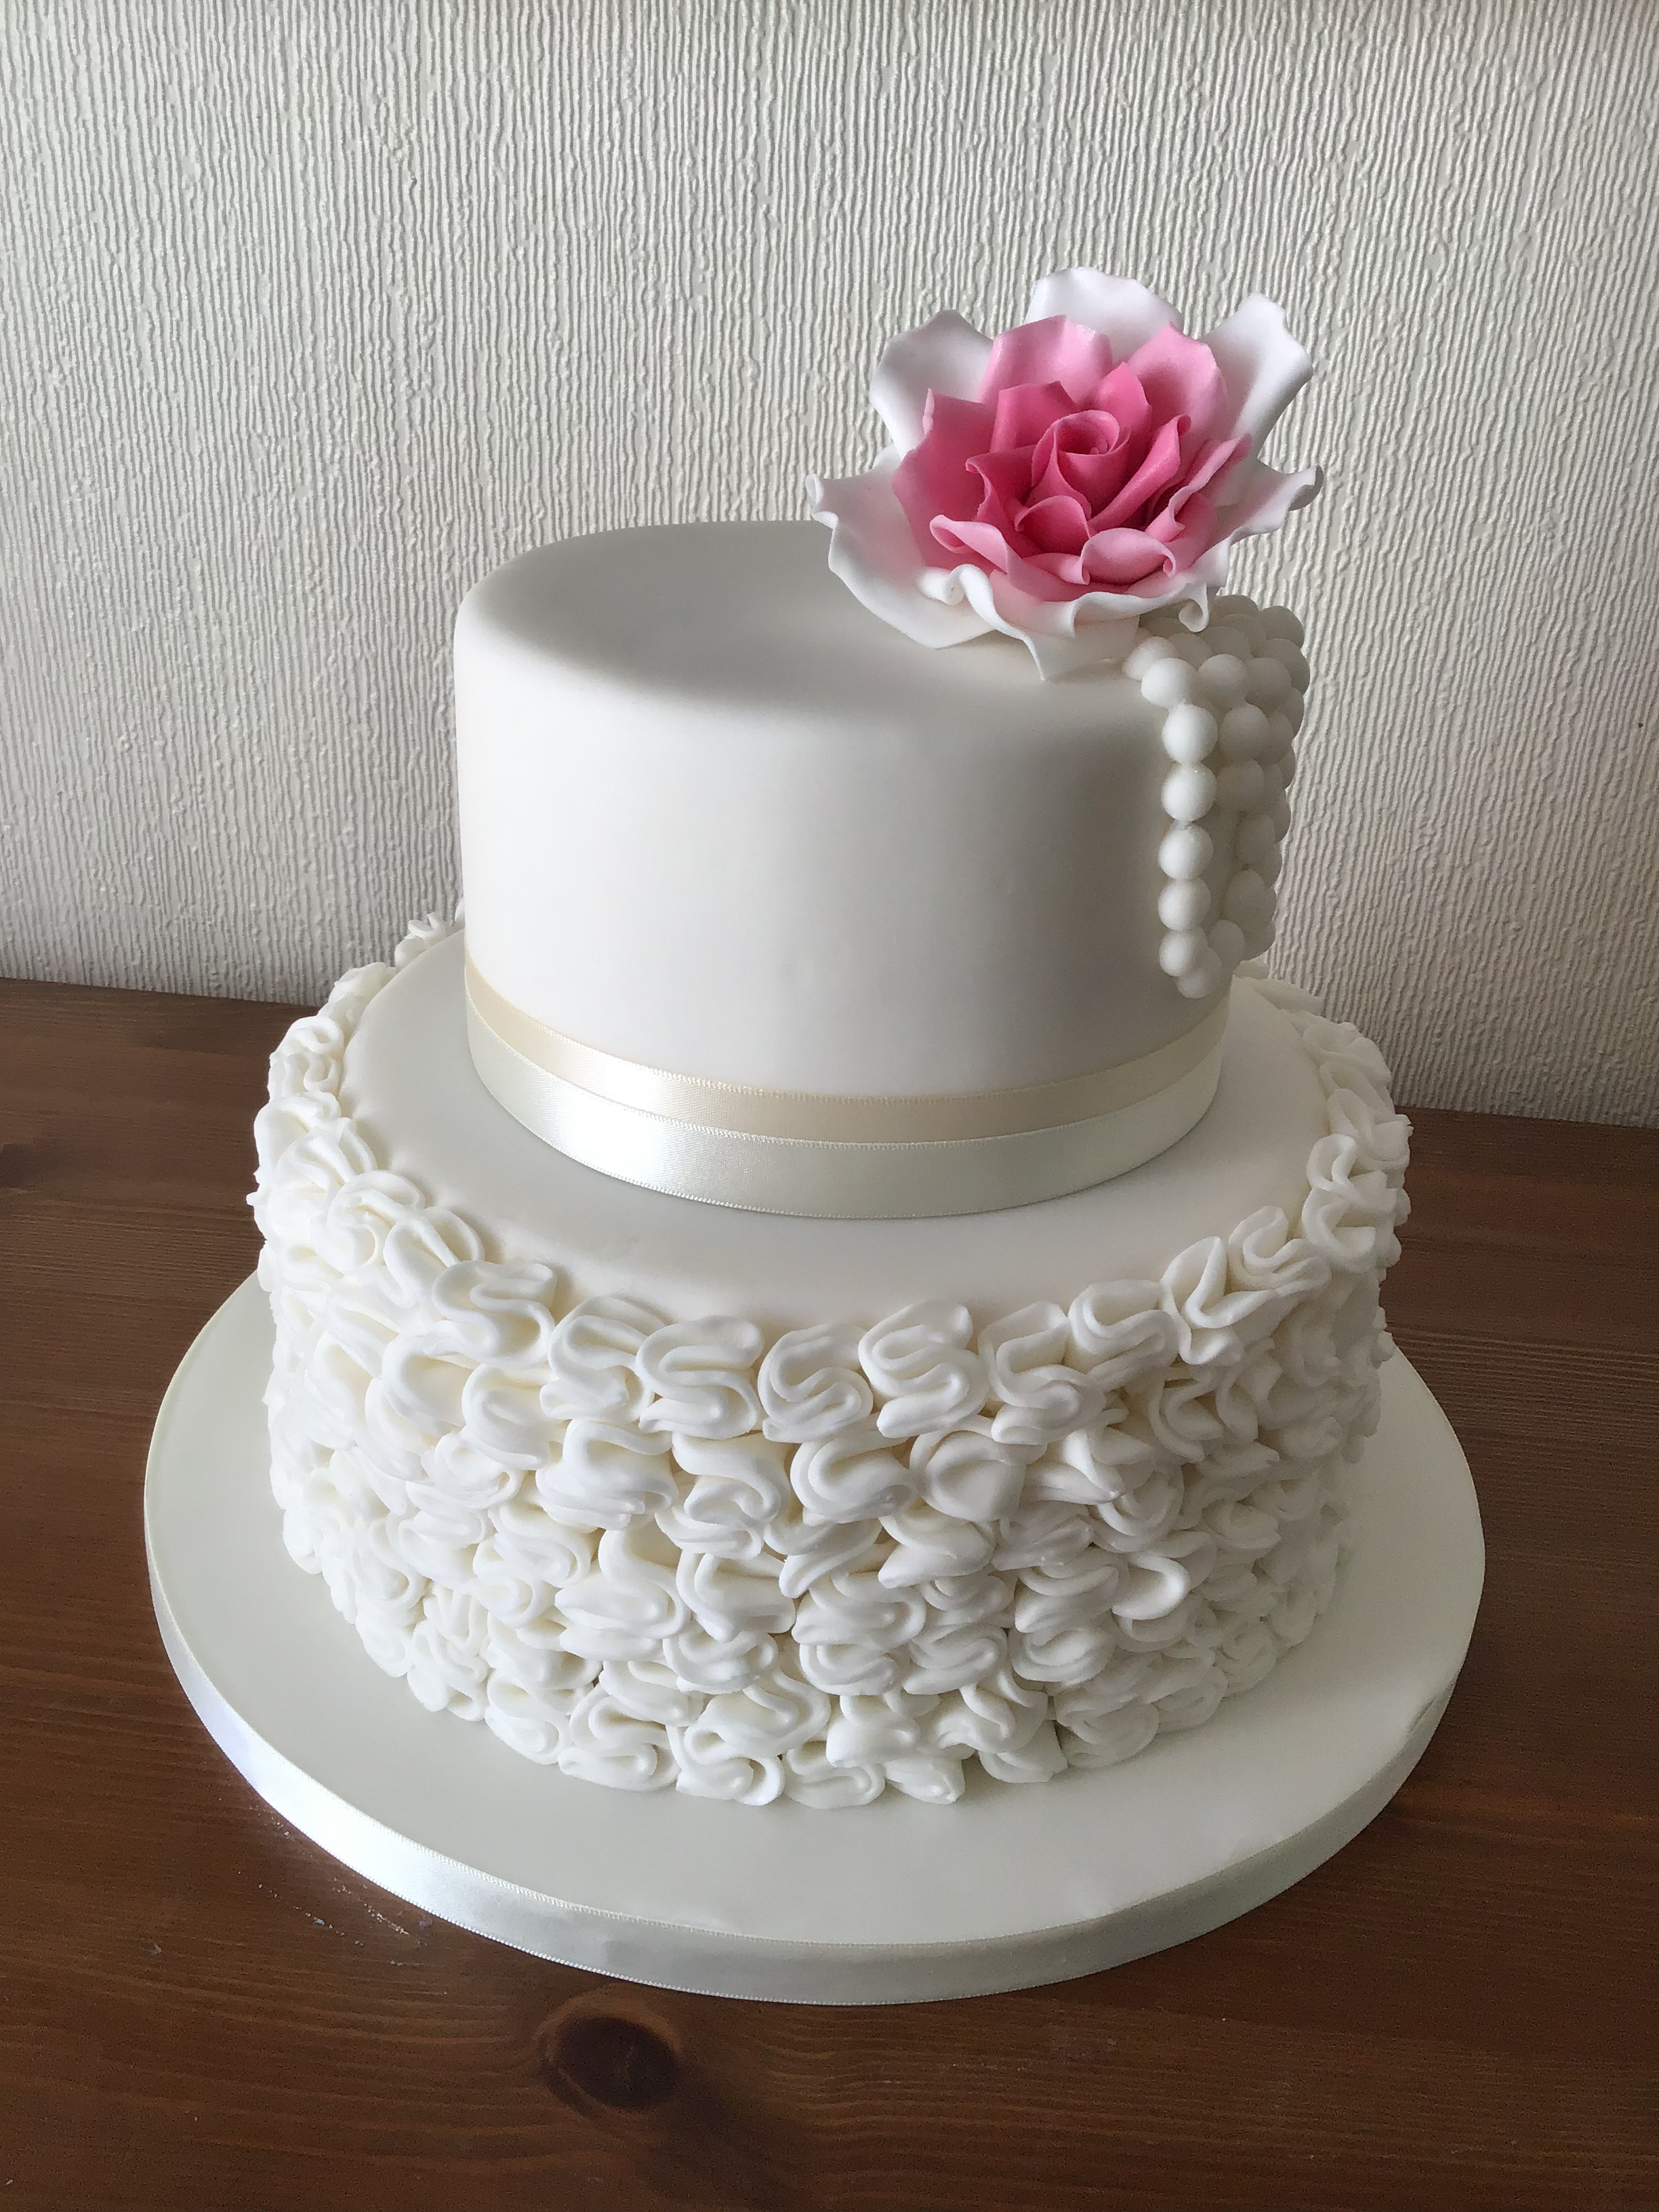 New Gallery Helen Kerry S Cakes